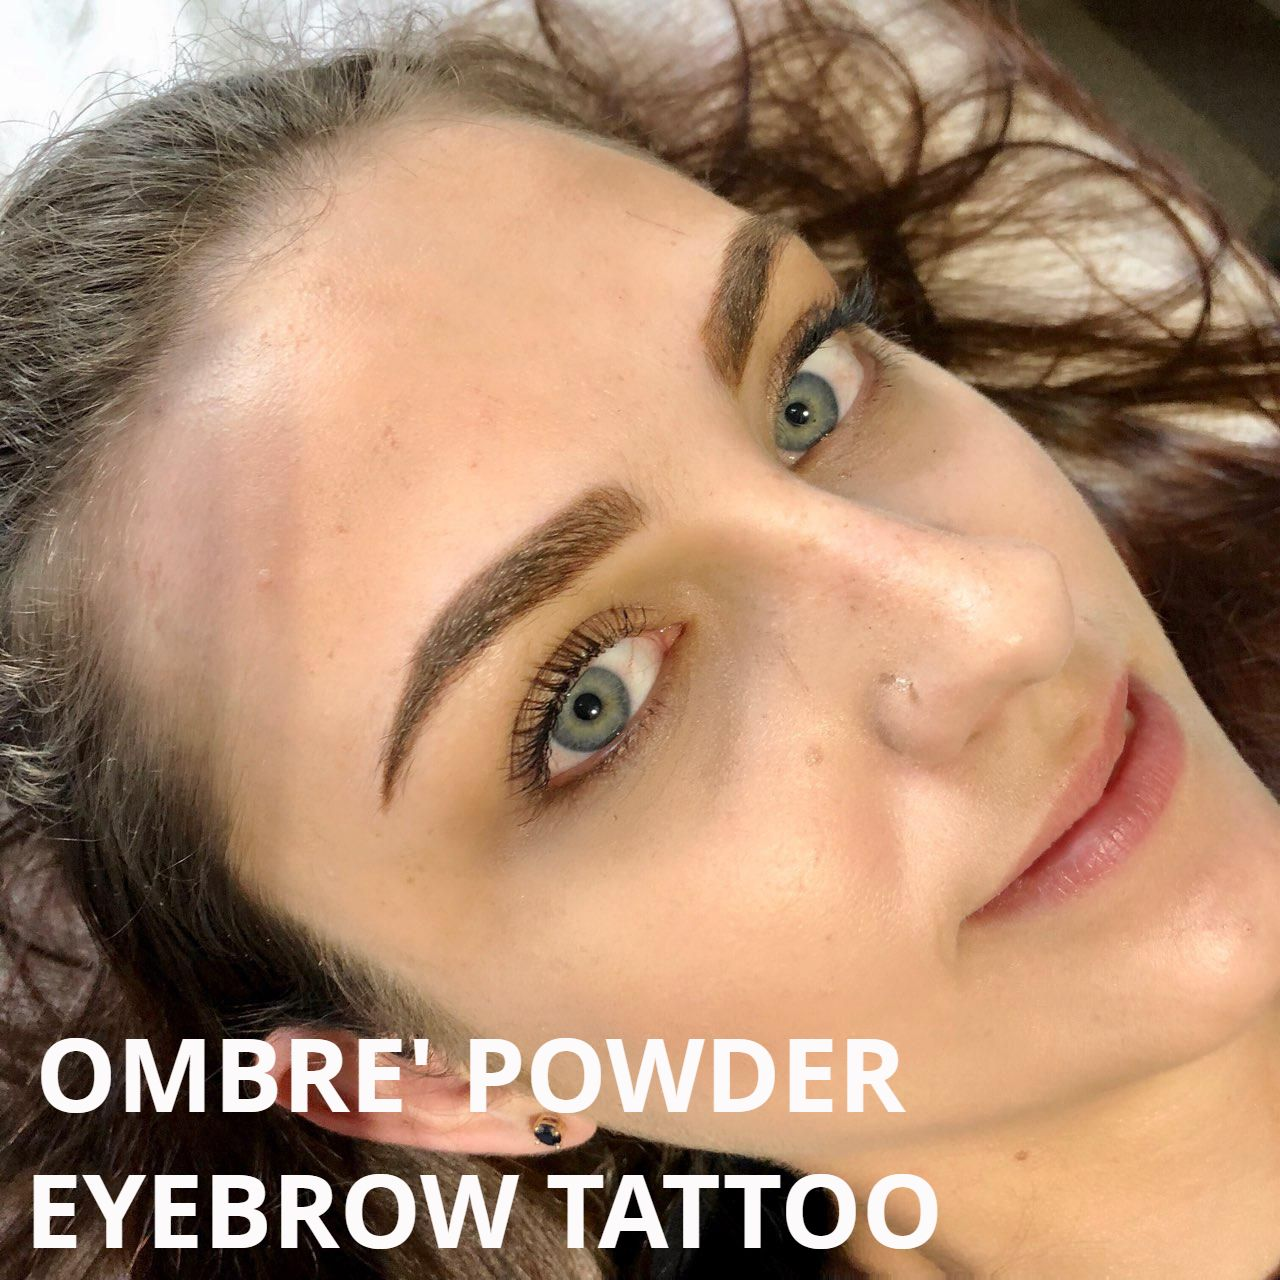 Eyebrow Tattoo, Eyebrow Microblading, Eyebrow Feathering in Melbourne